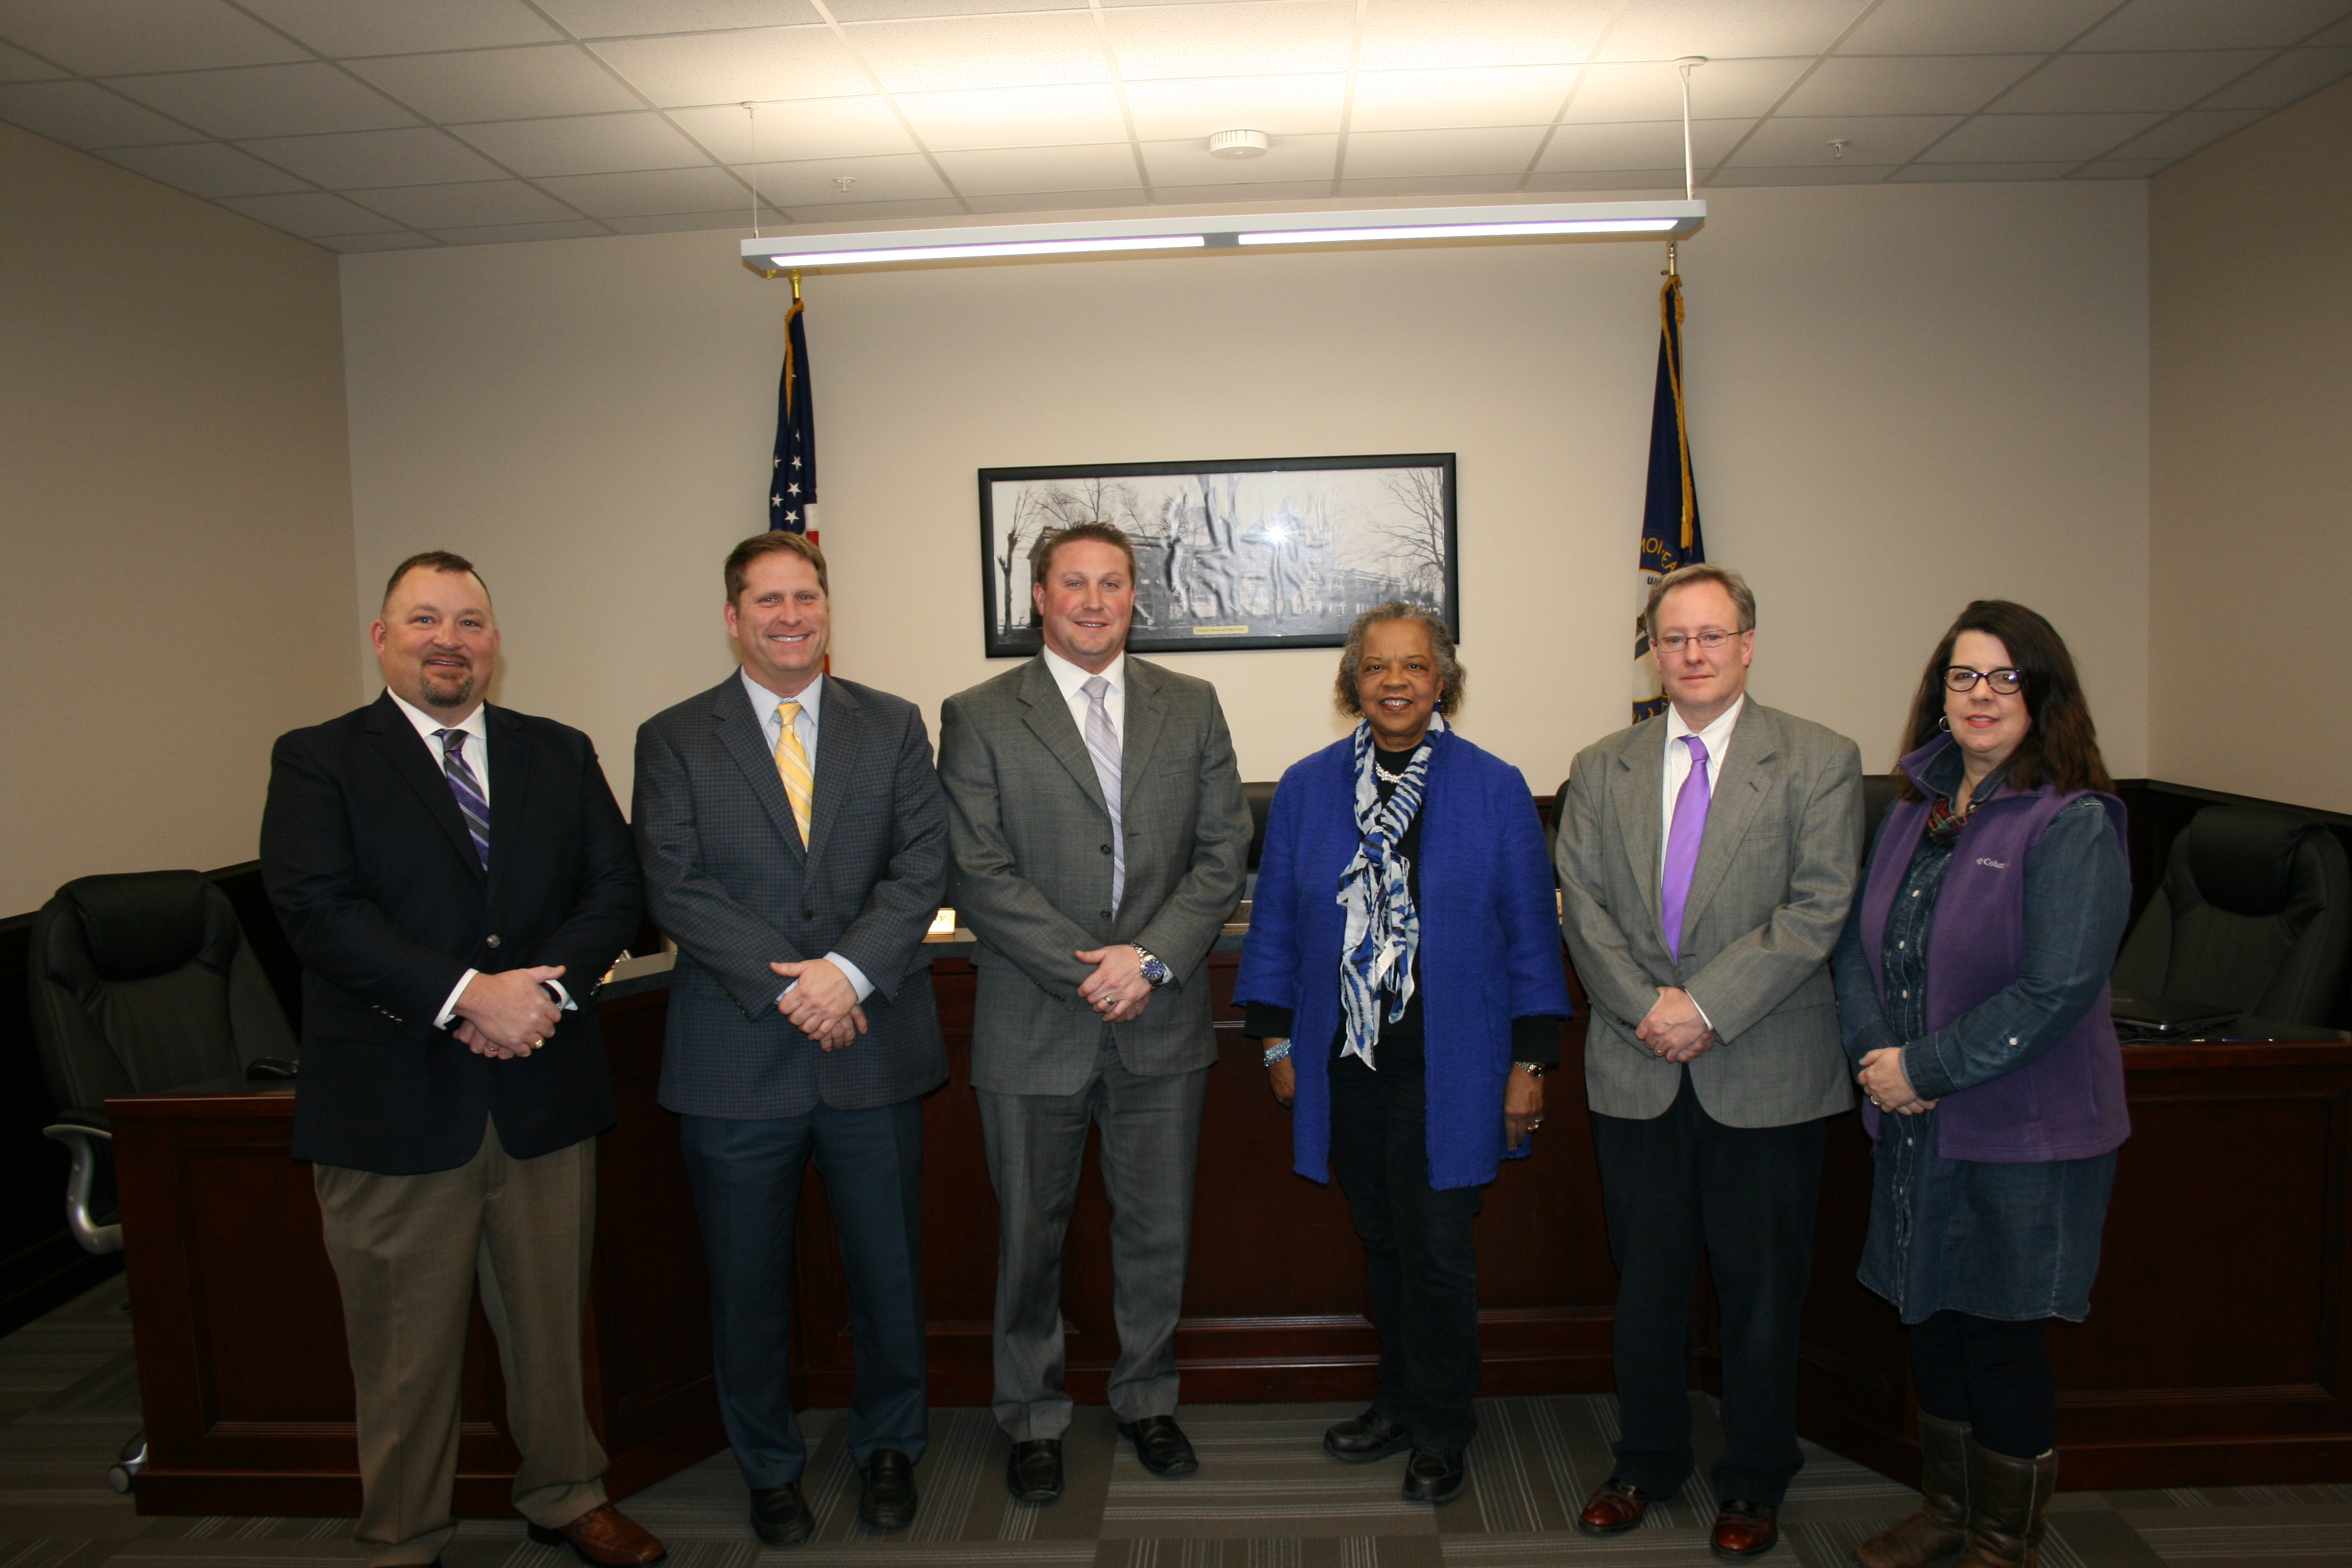 2017 Somerset Board of Education Members and Superintendent